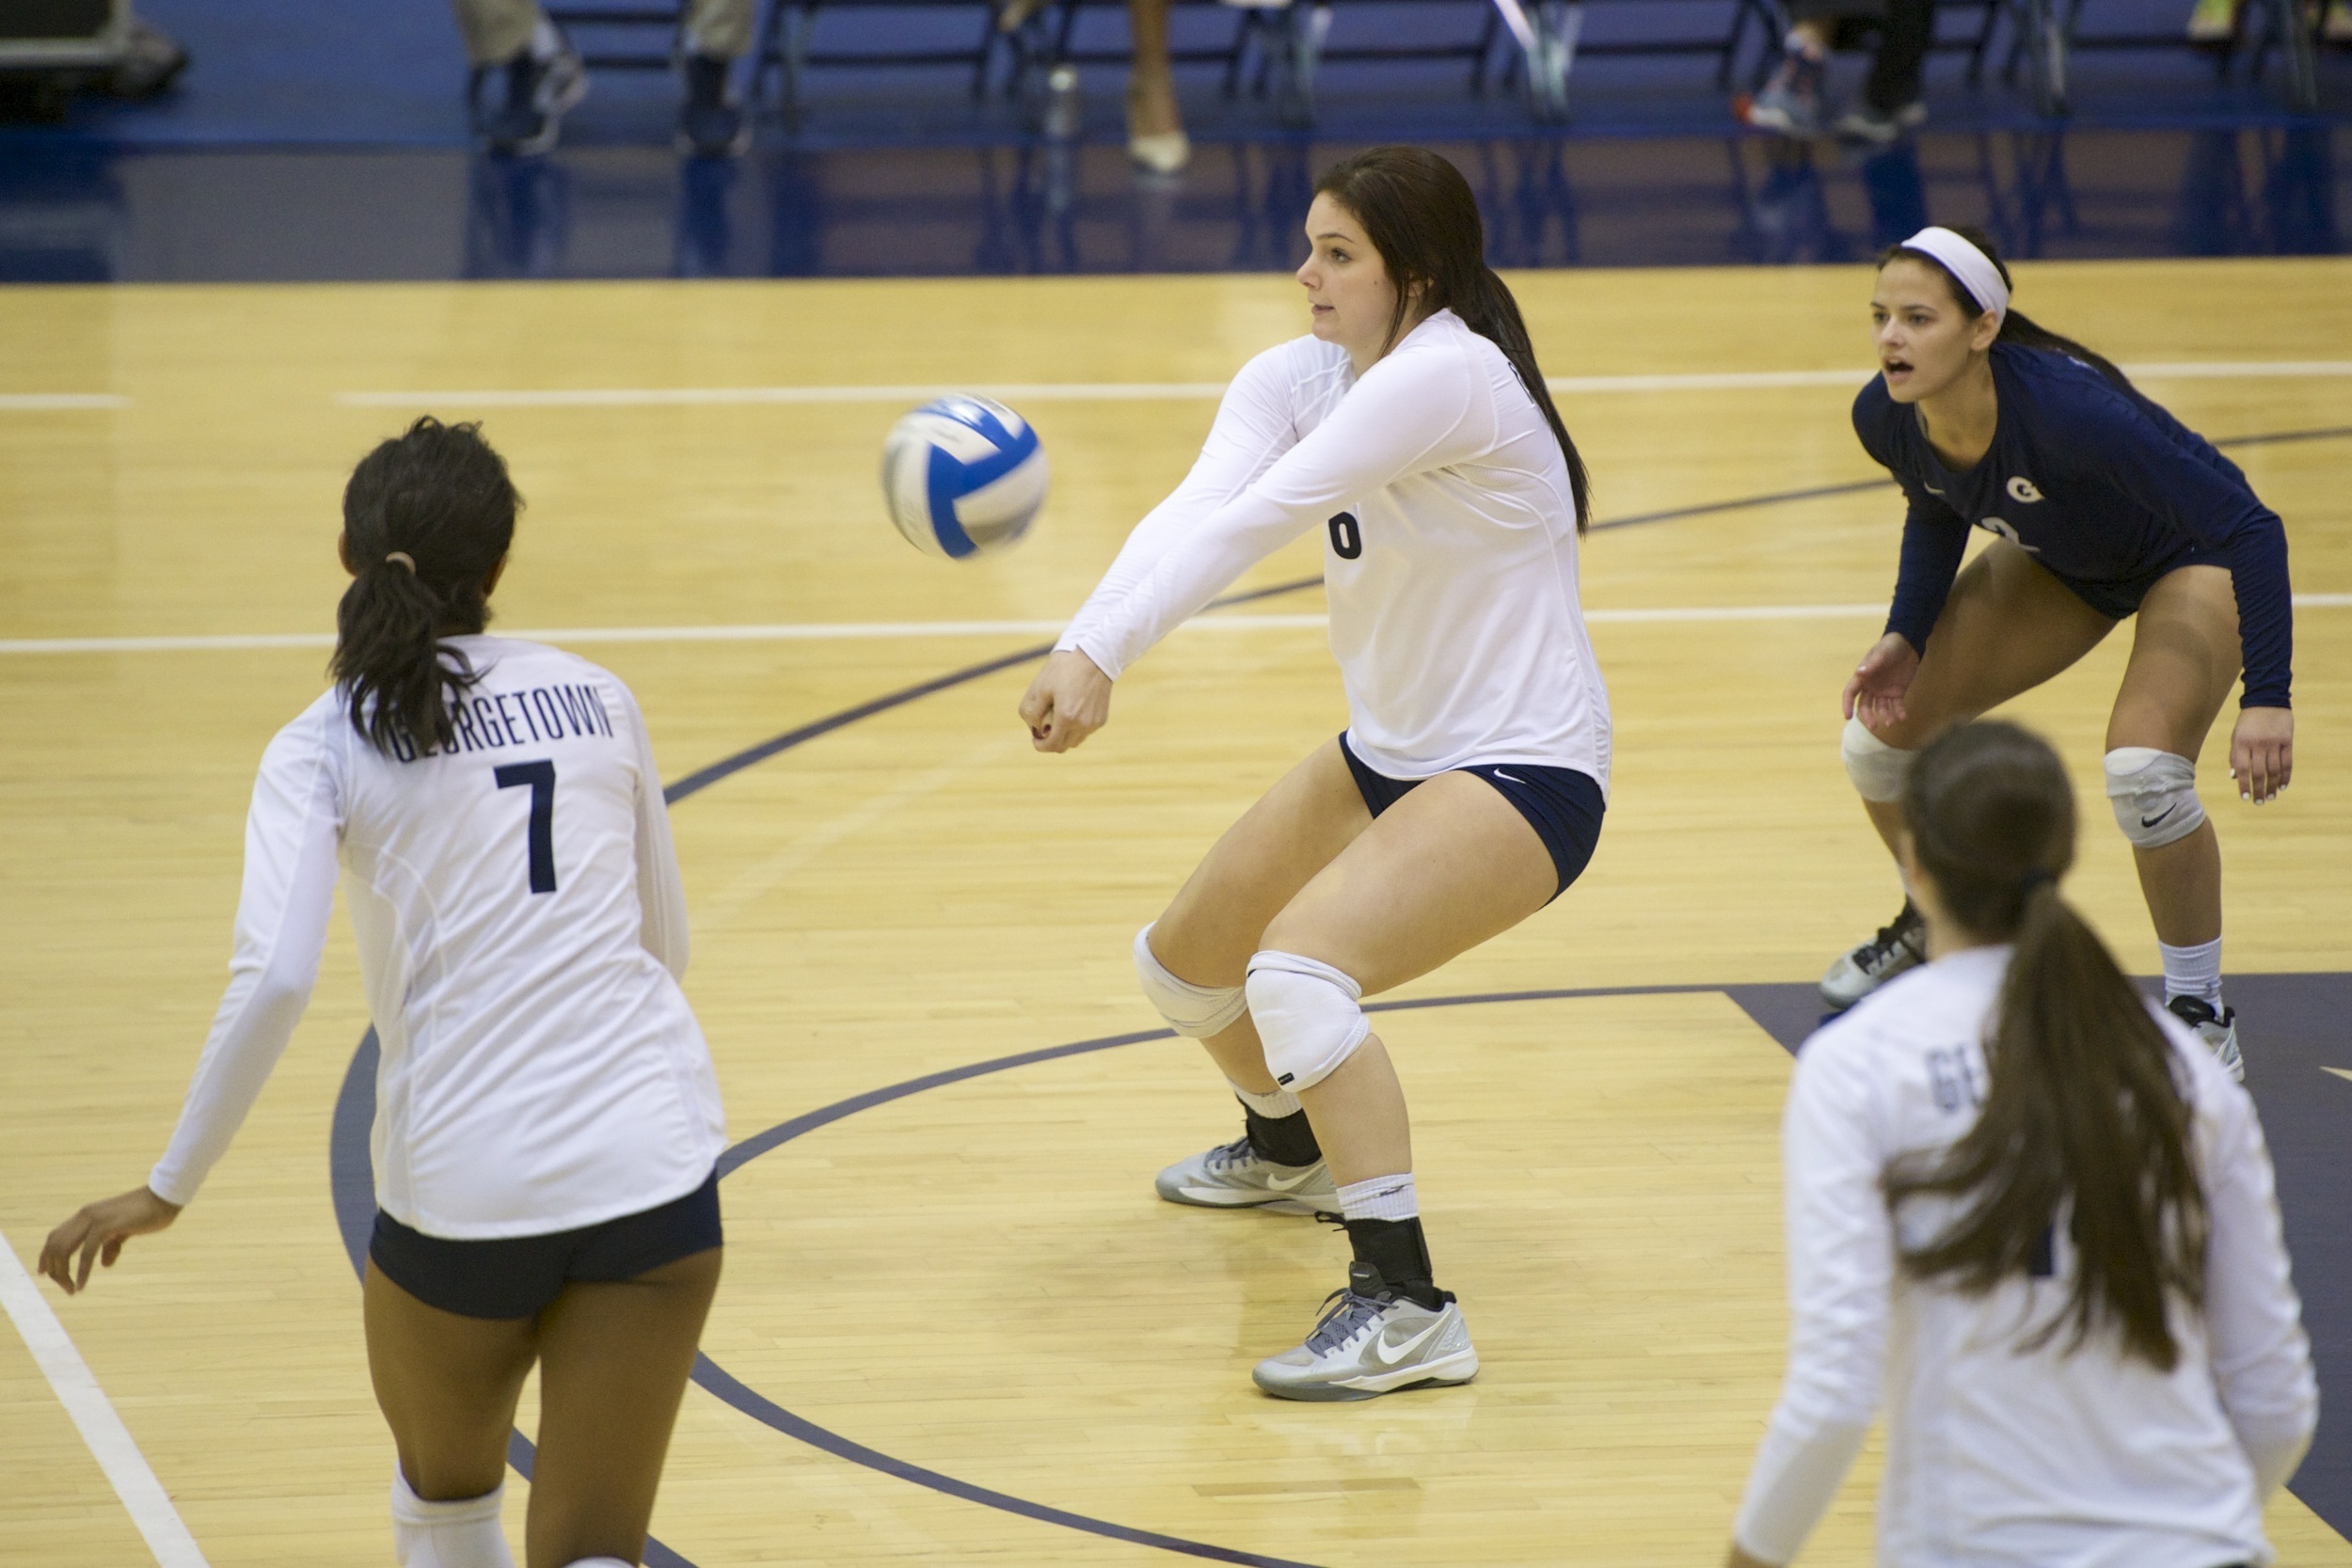 Alex Johnson had a double-double with 12 kills and 10 digs on Sunday